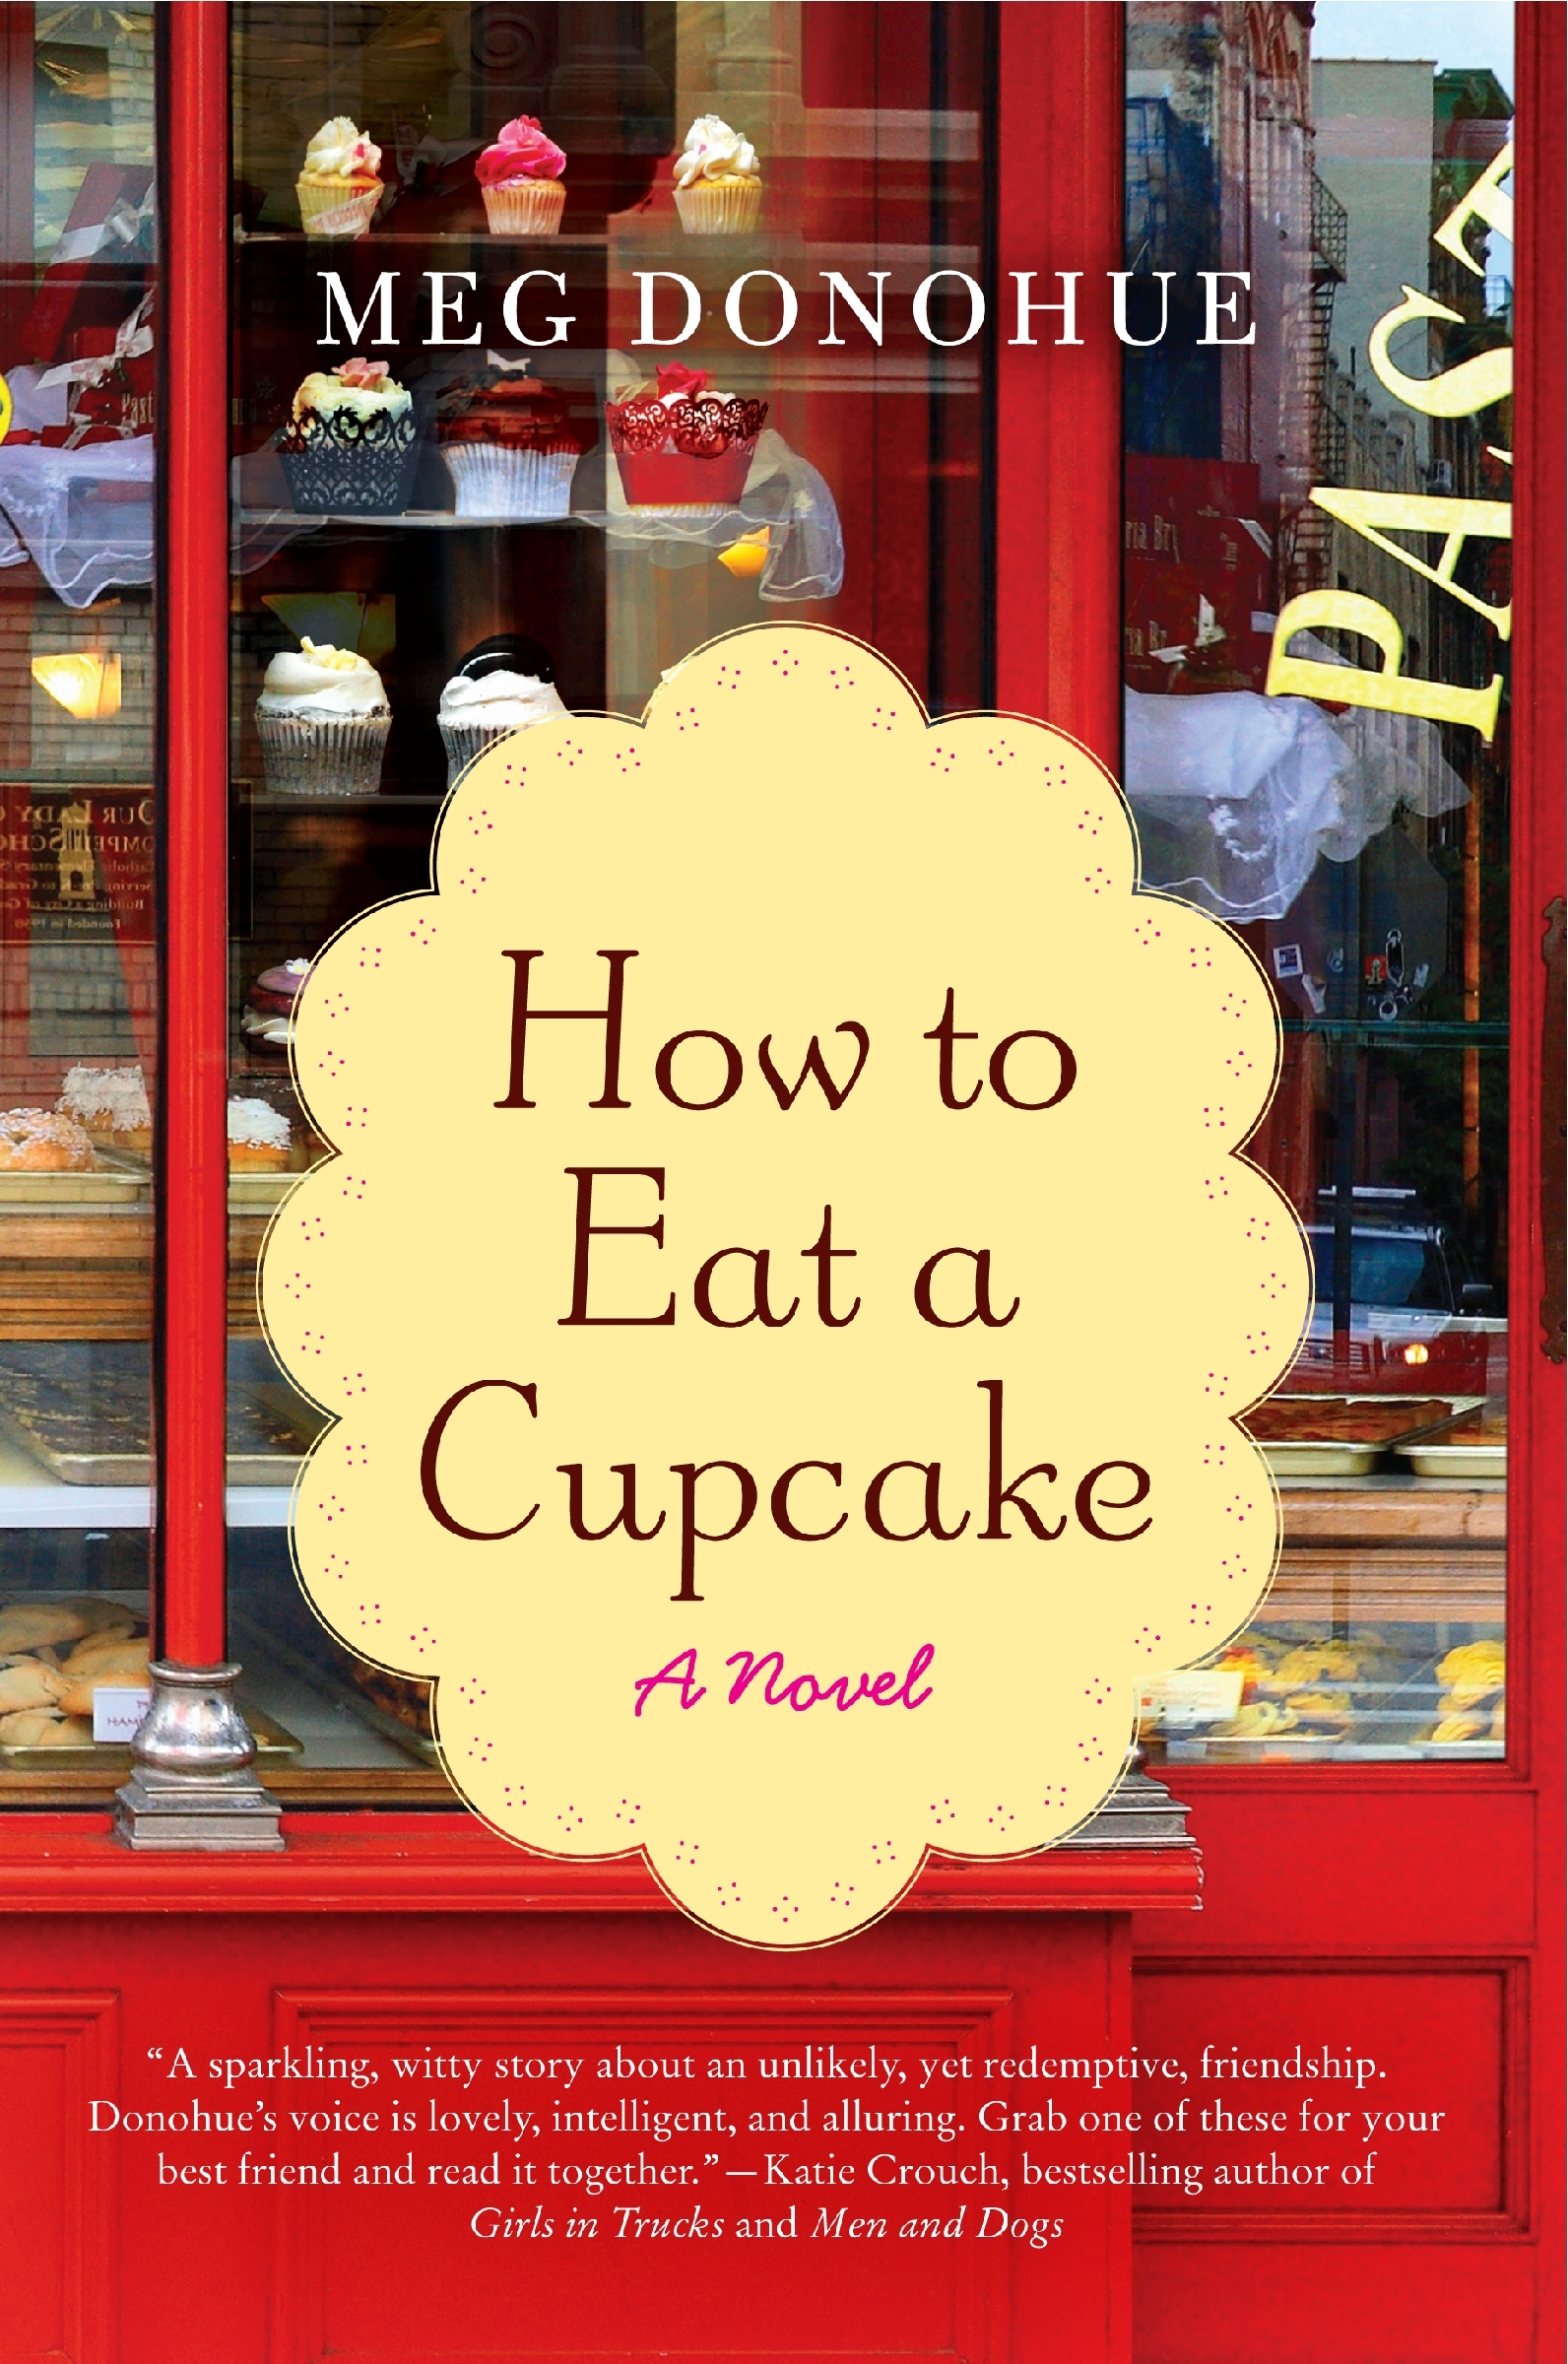 How To Eat A Cupcake by Meg Donohue